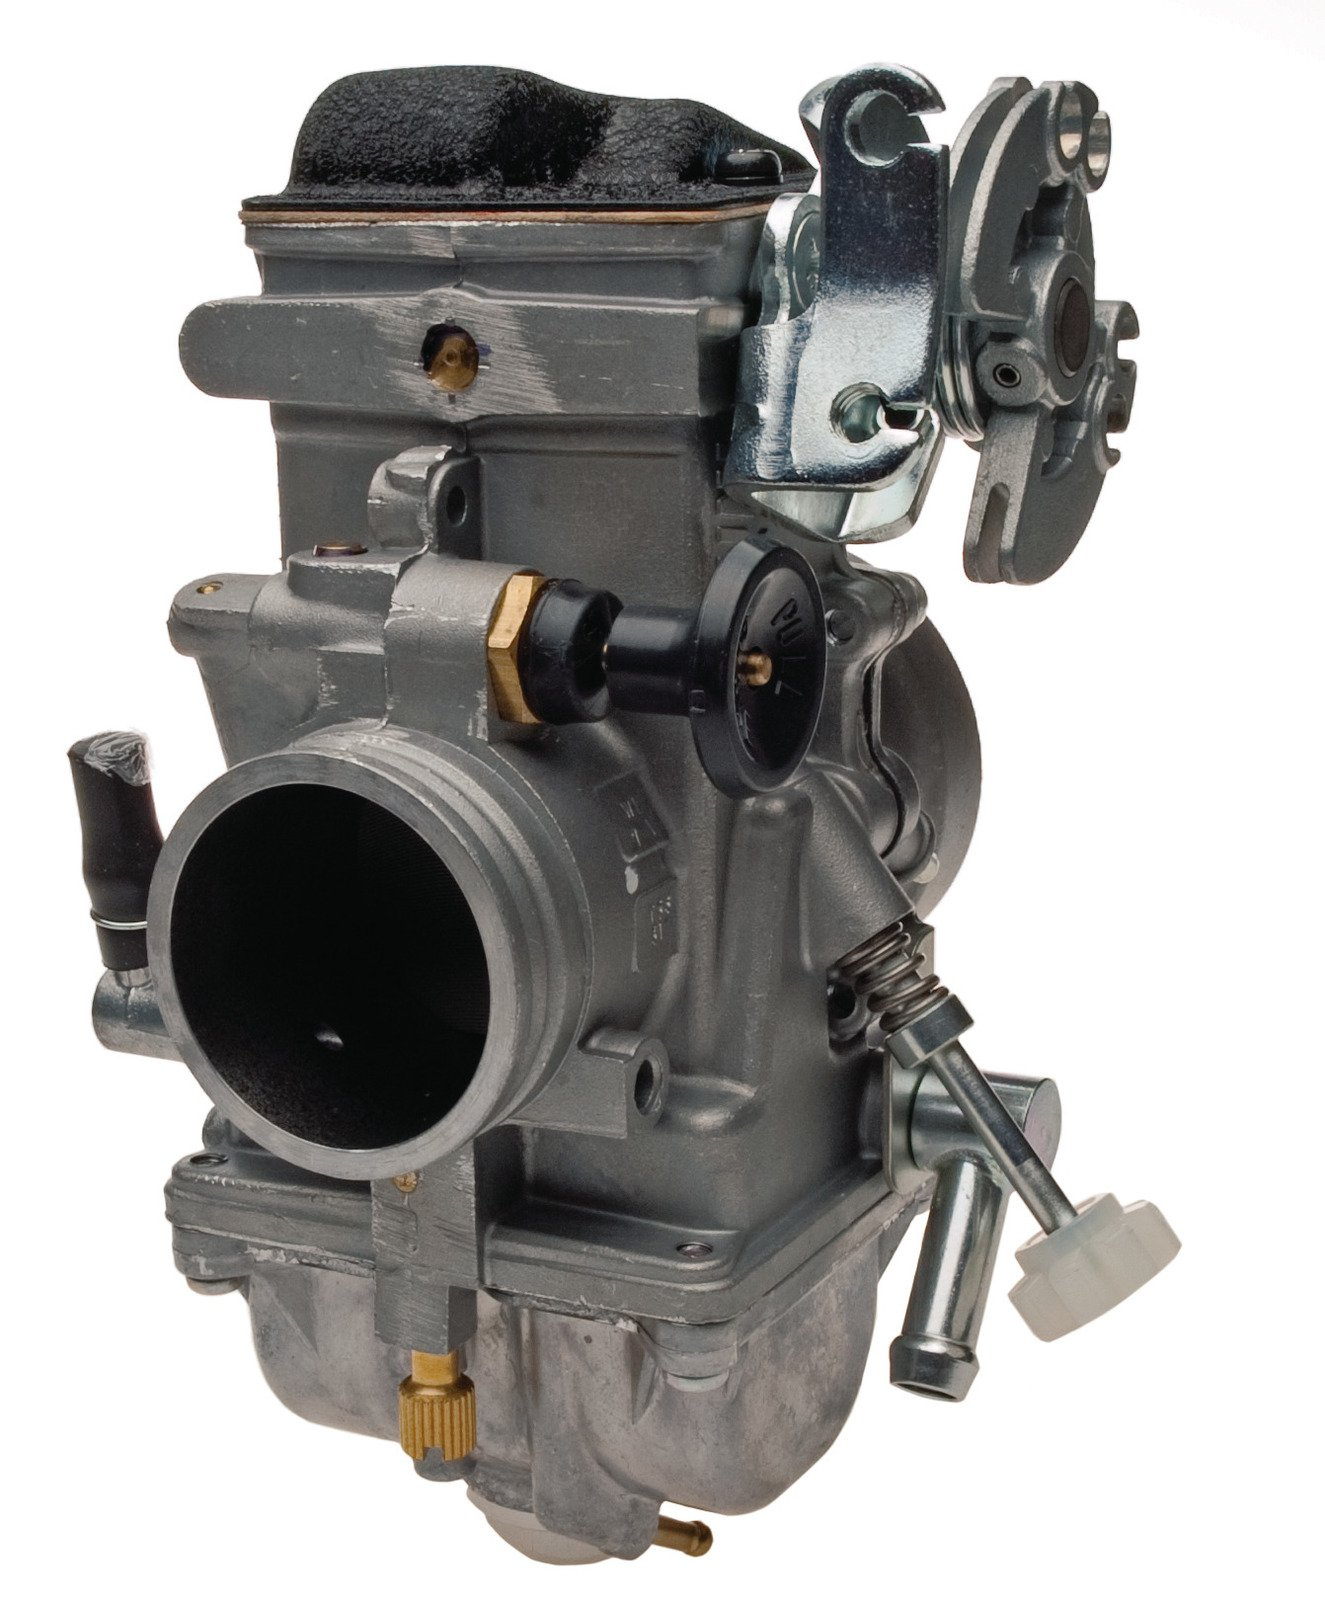 hight resolution of yamaha sr500 tt500 xt500 mikuni tm36 68 pre jetted pumper flat slide carburetor 02 023